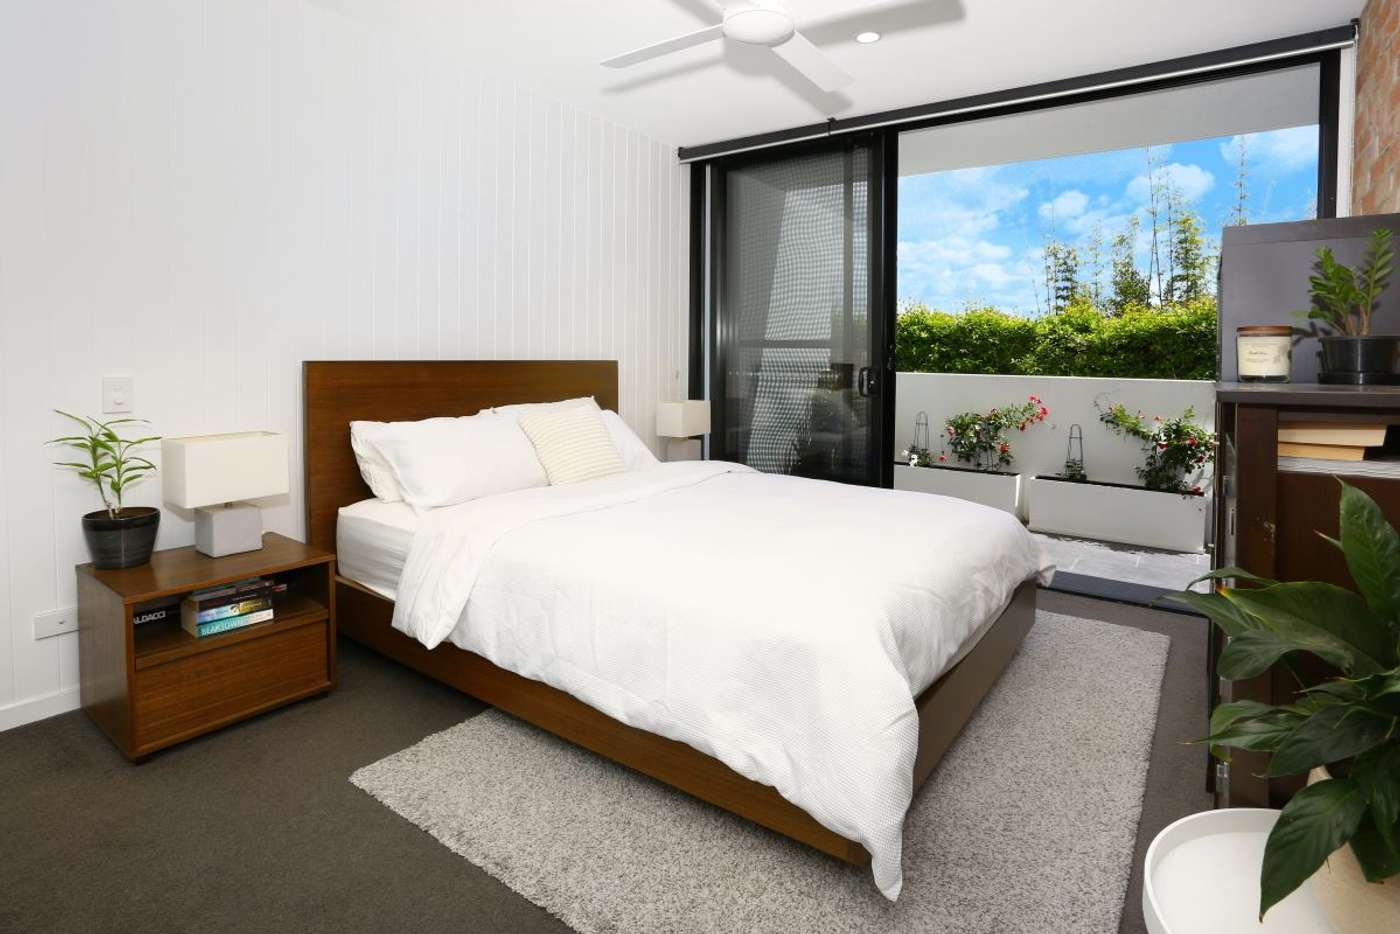 Seventh view of Homely unit listing, 106/1 Hart Street, Ashmore QLD 4214